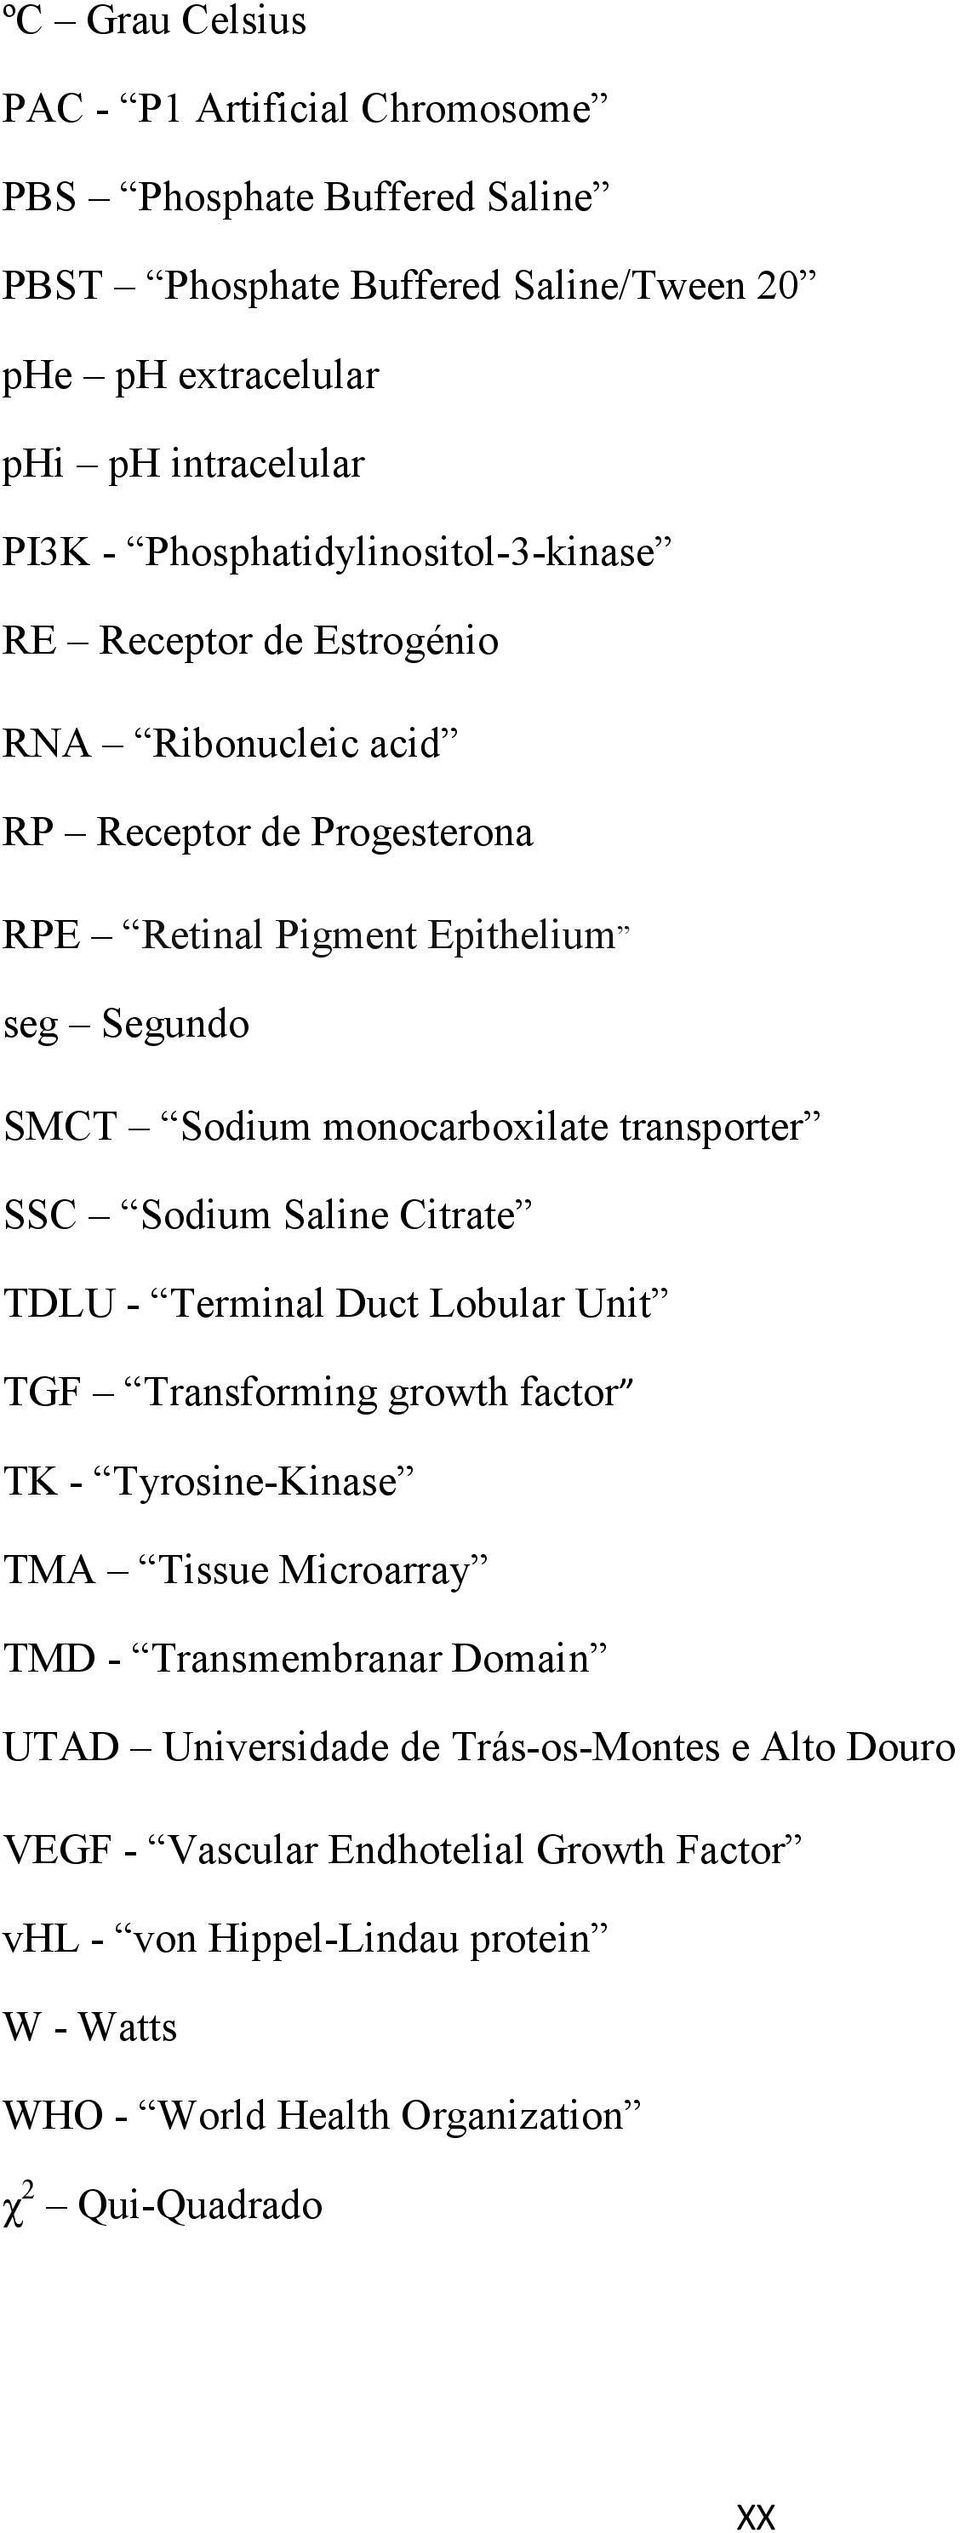 monocarboxilate transporter SSC Sodium Saline Citrate TDLU - Terminal Duct Lobular Unit TGF Transforming growth factor TK - Tyrosine-Kinase TMA Tissue Microarray TMD -